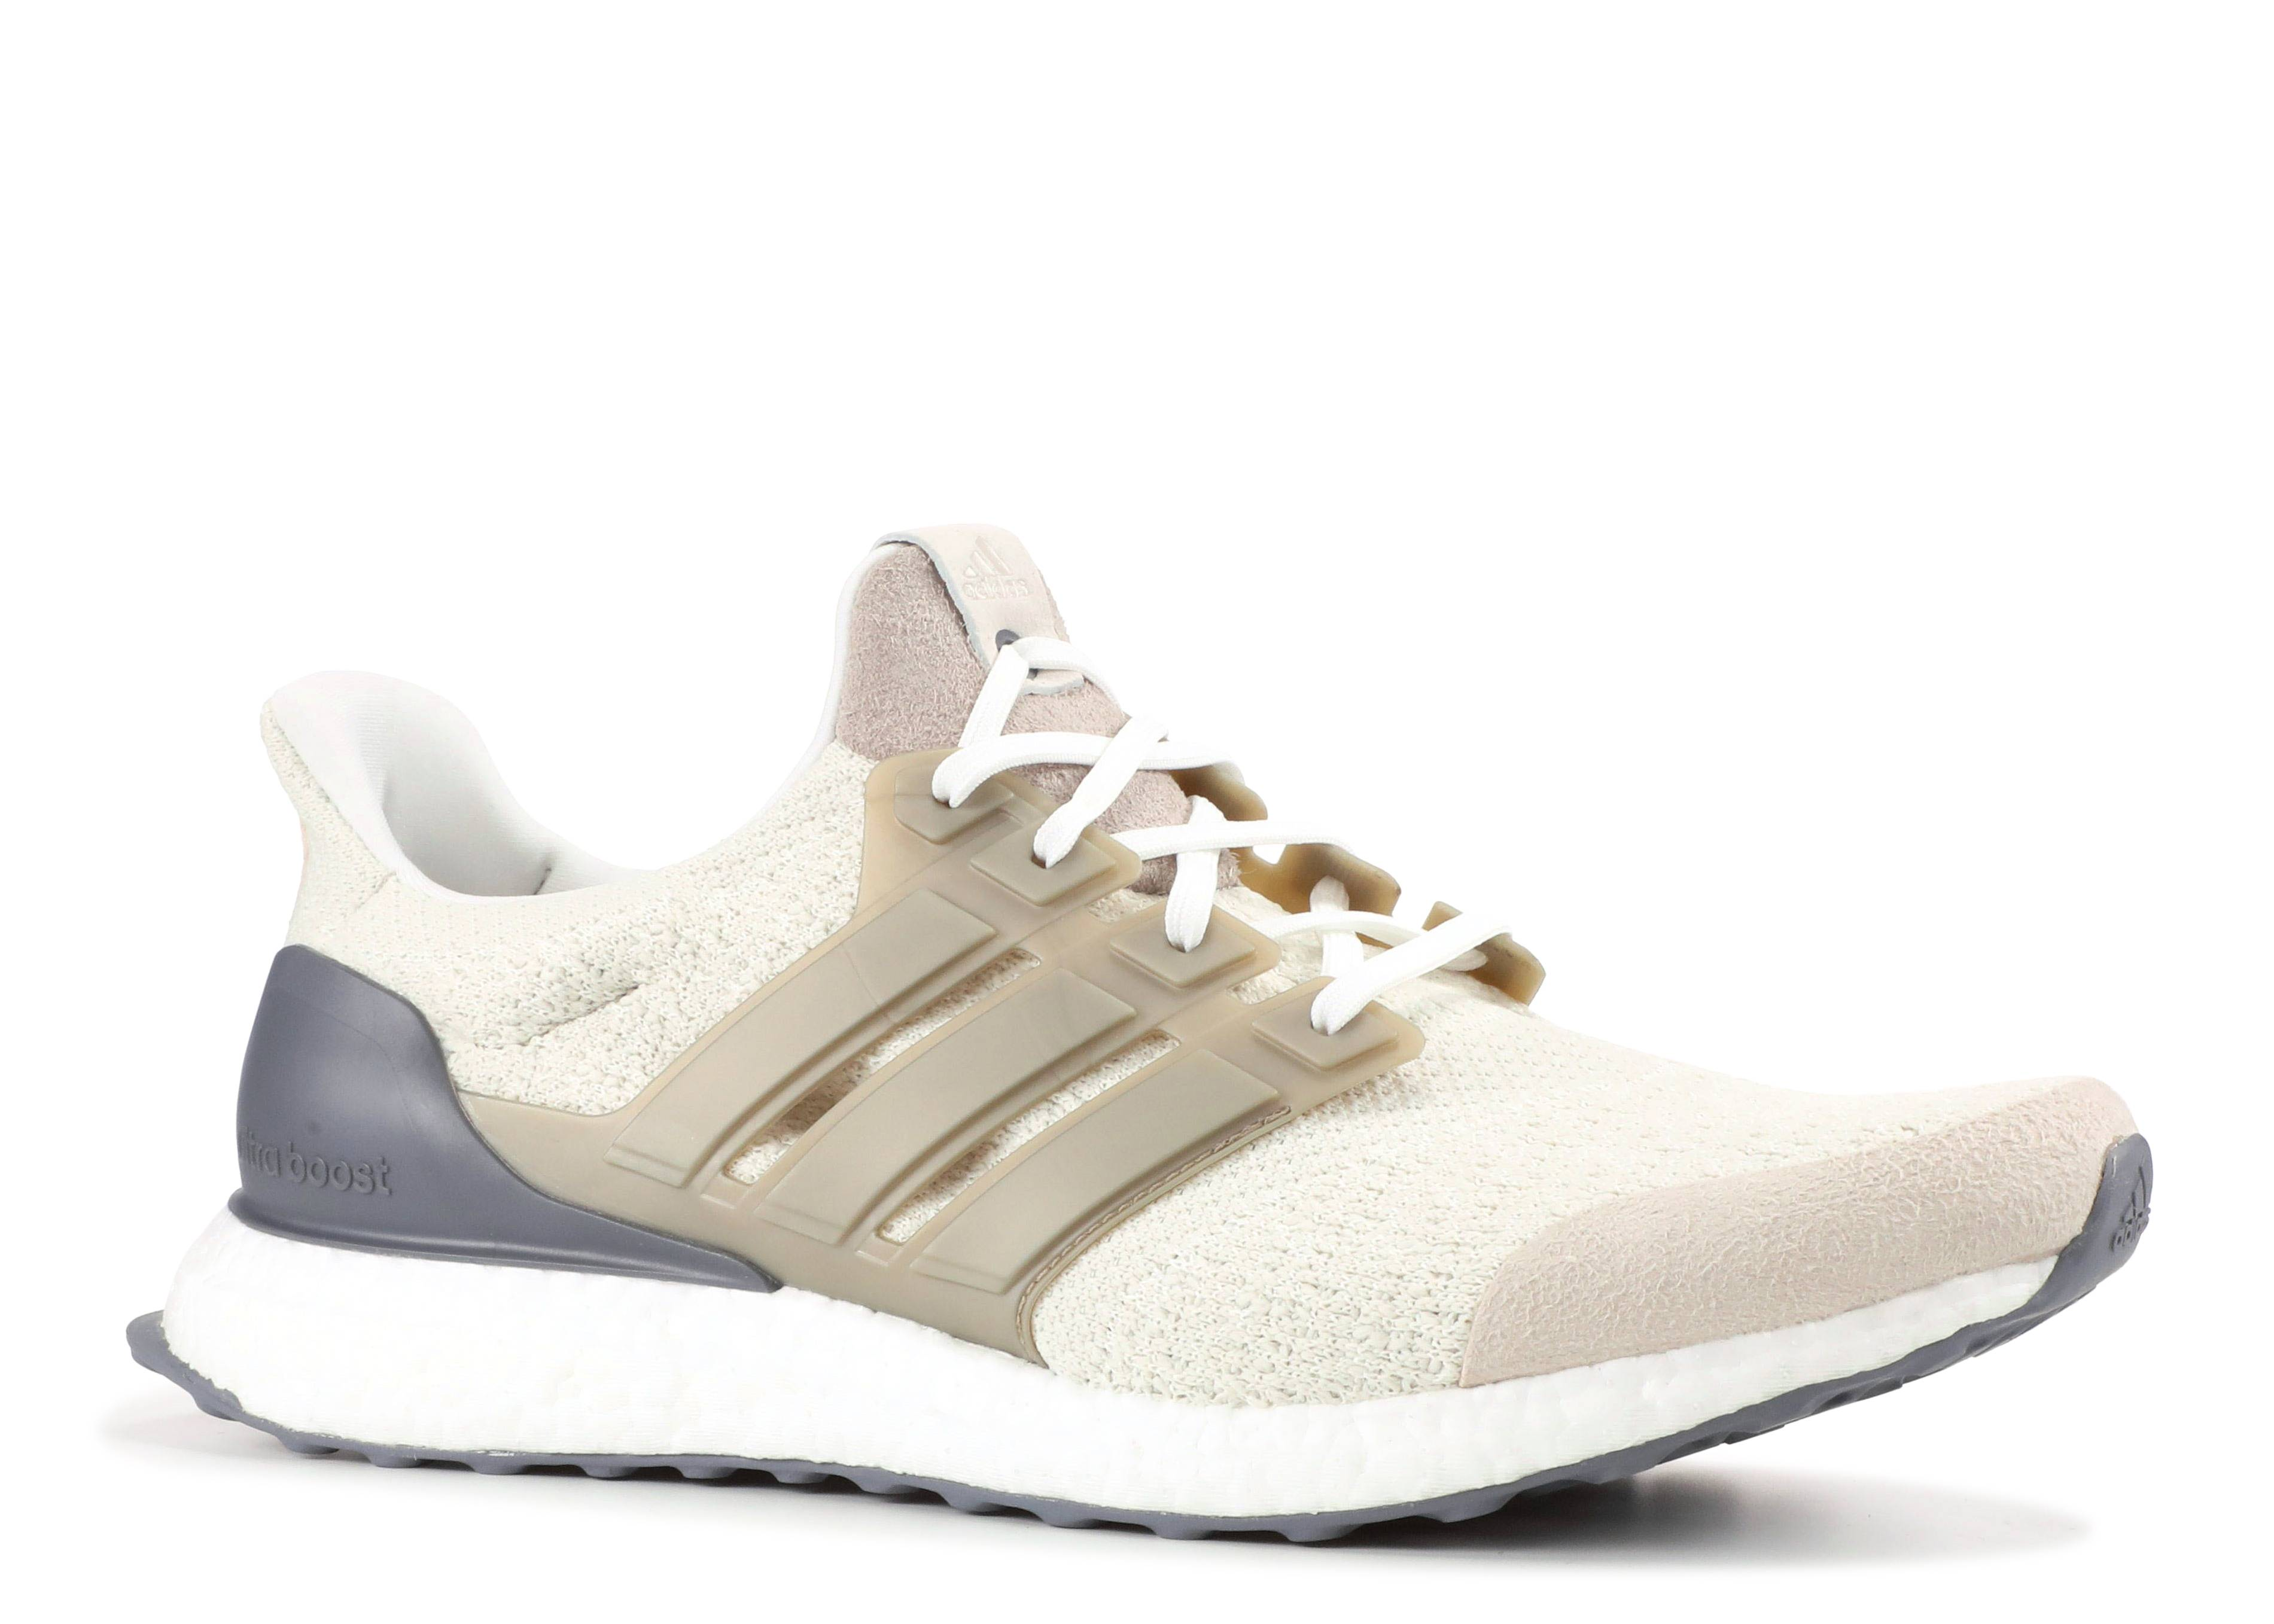 ULTRABOOST LUX - Adidas - DB0338 - vintage white chocolate brown ... 4b05cb0a55af